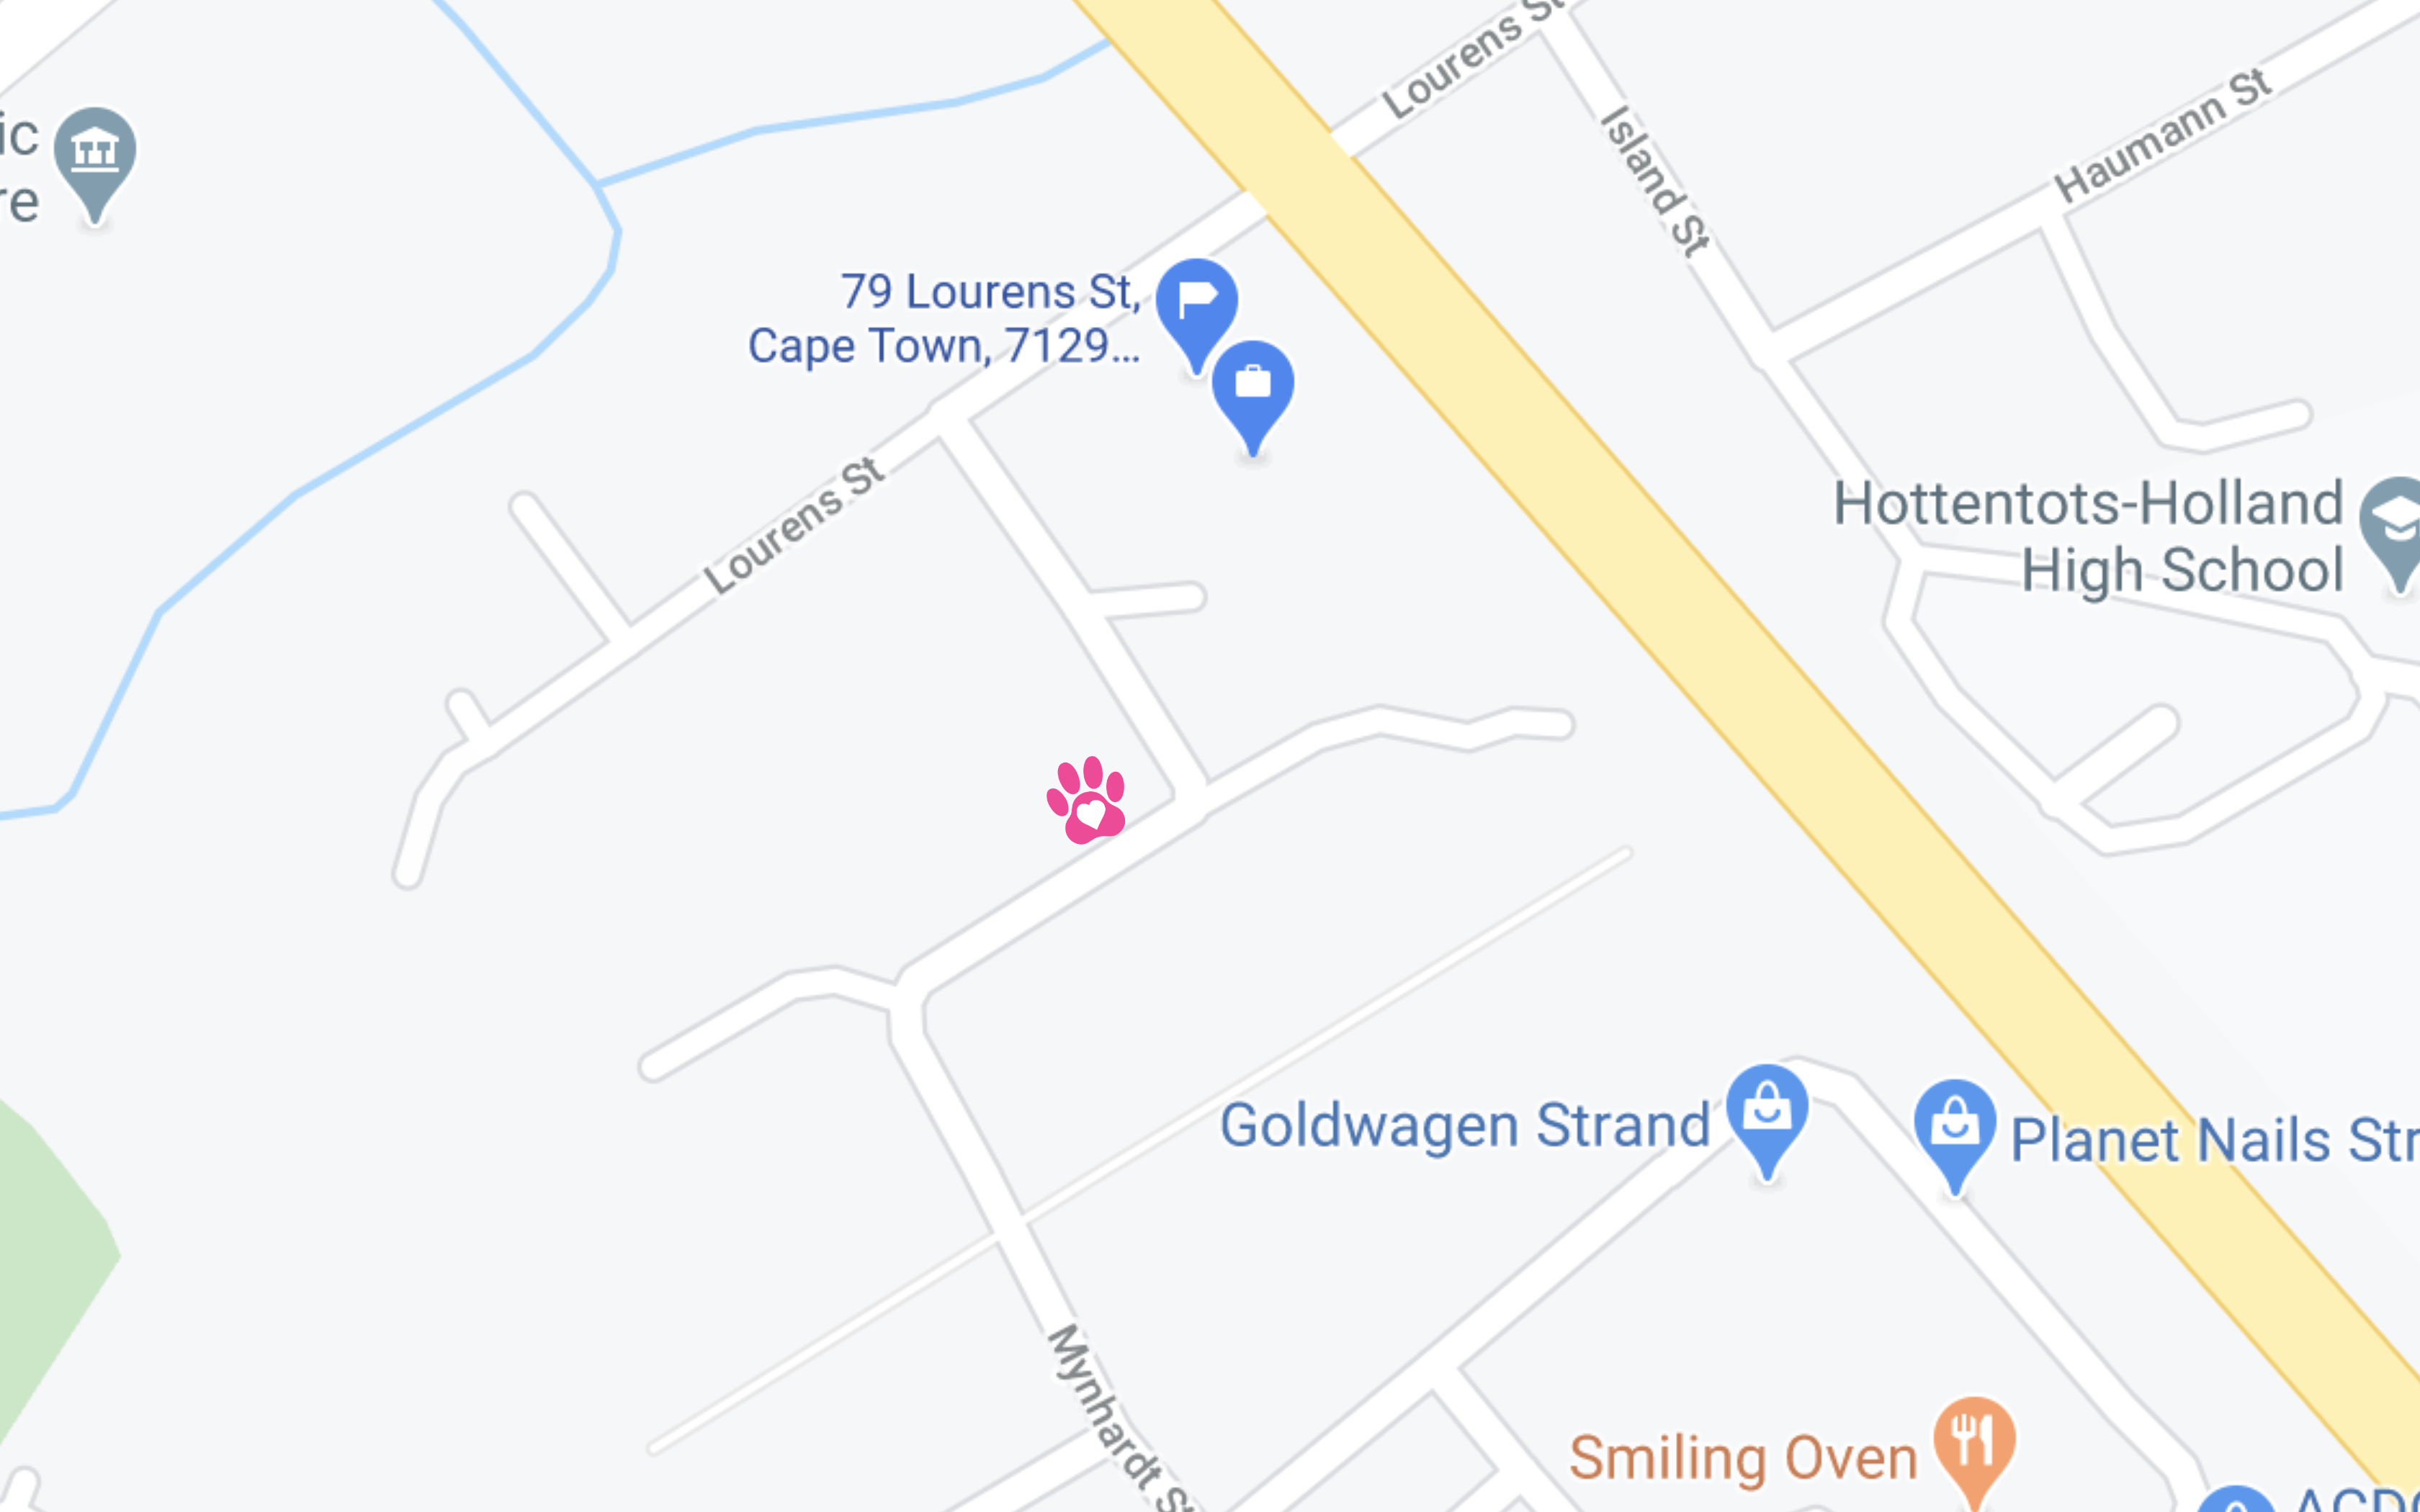 Snippet of Google maps showing location of DogsDayOut building.